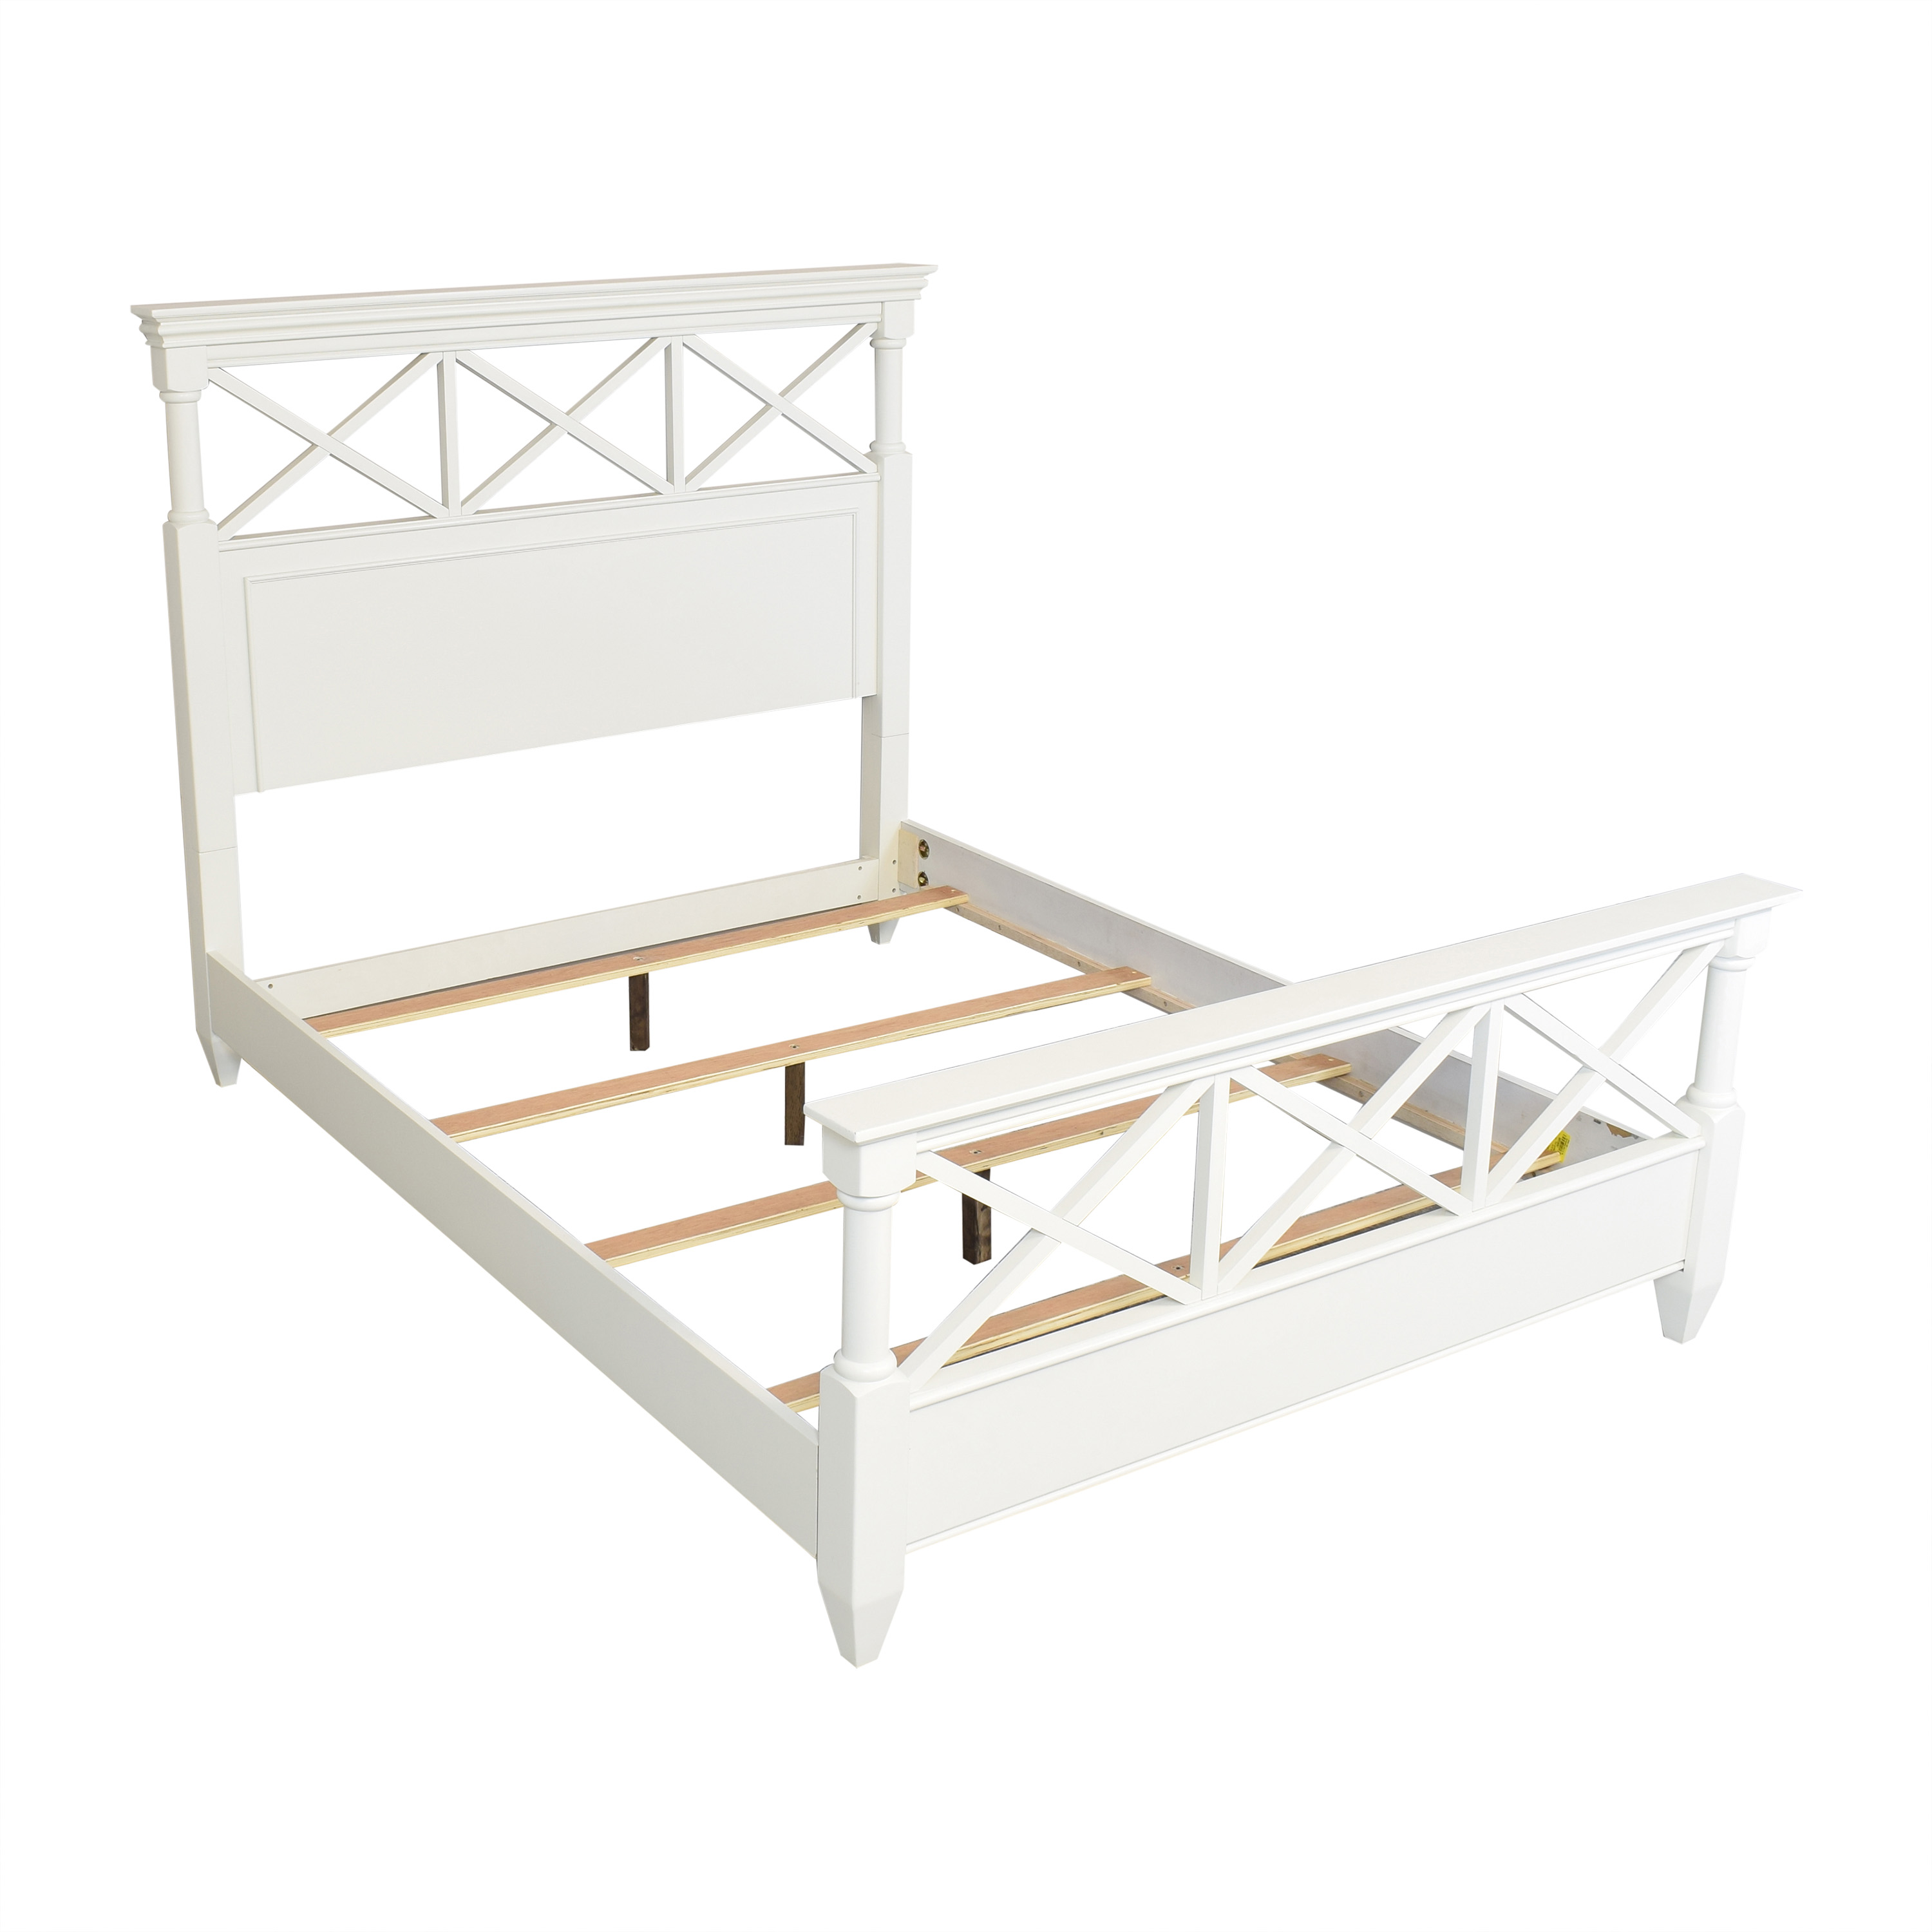 shop Raymour & Flanigan Retreat Queen Bed Raymour & Flanigan Beds